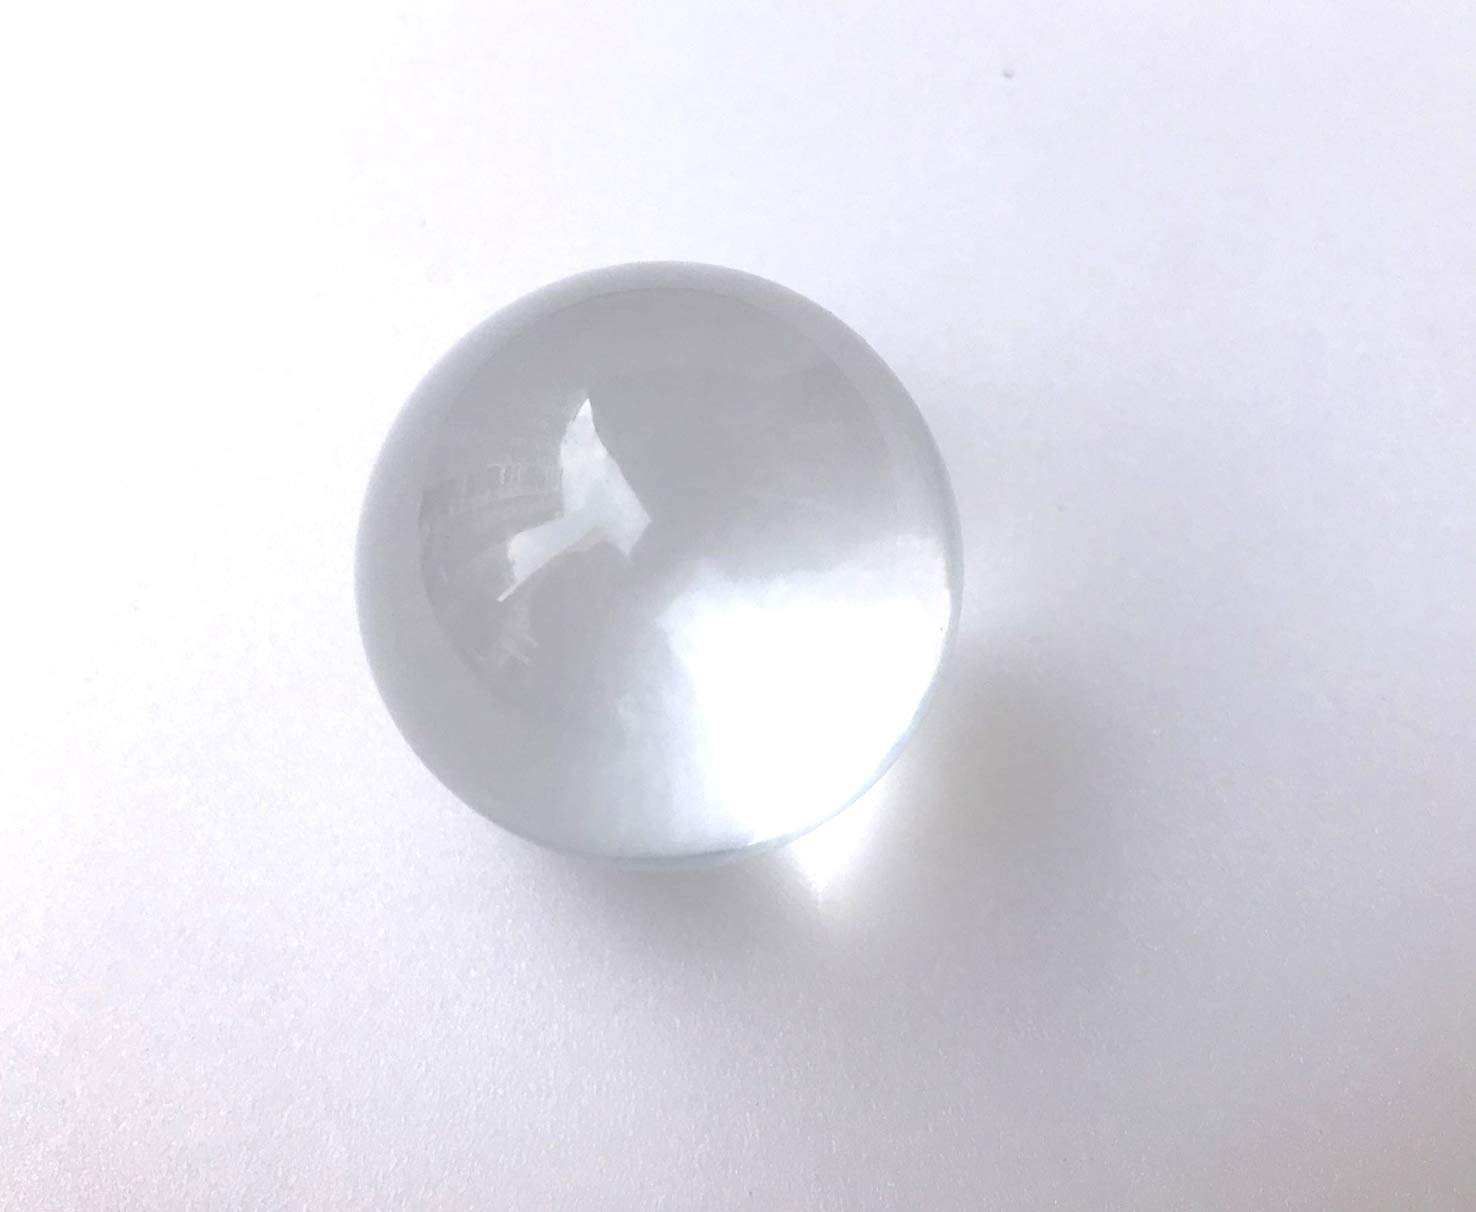 YJZR 2pcs Round Clear Solid Acylic Sphere Transparent Ornament Crystal Ball 10mm//0.4 Inches Diameter